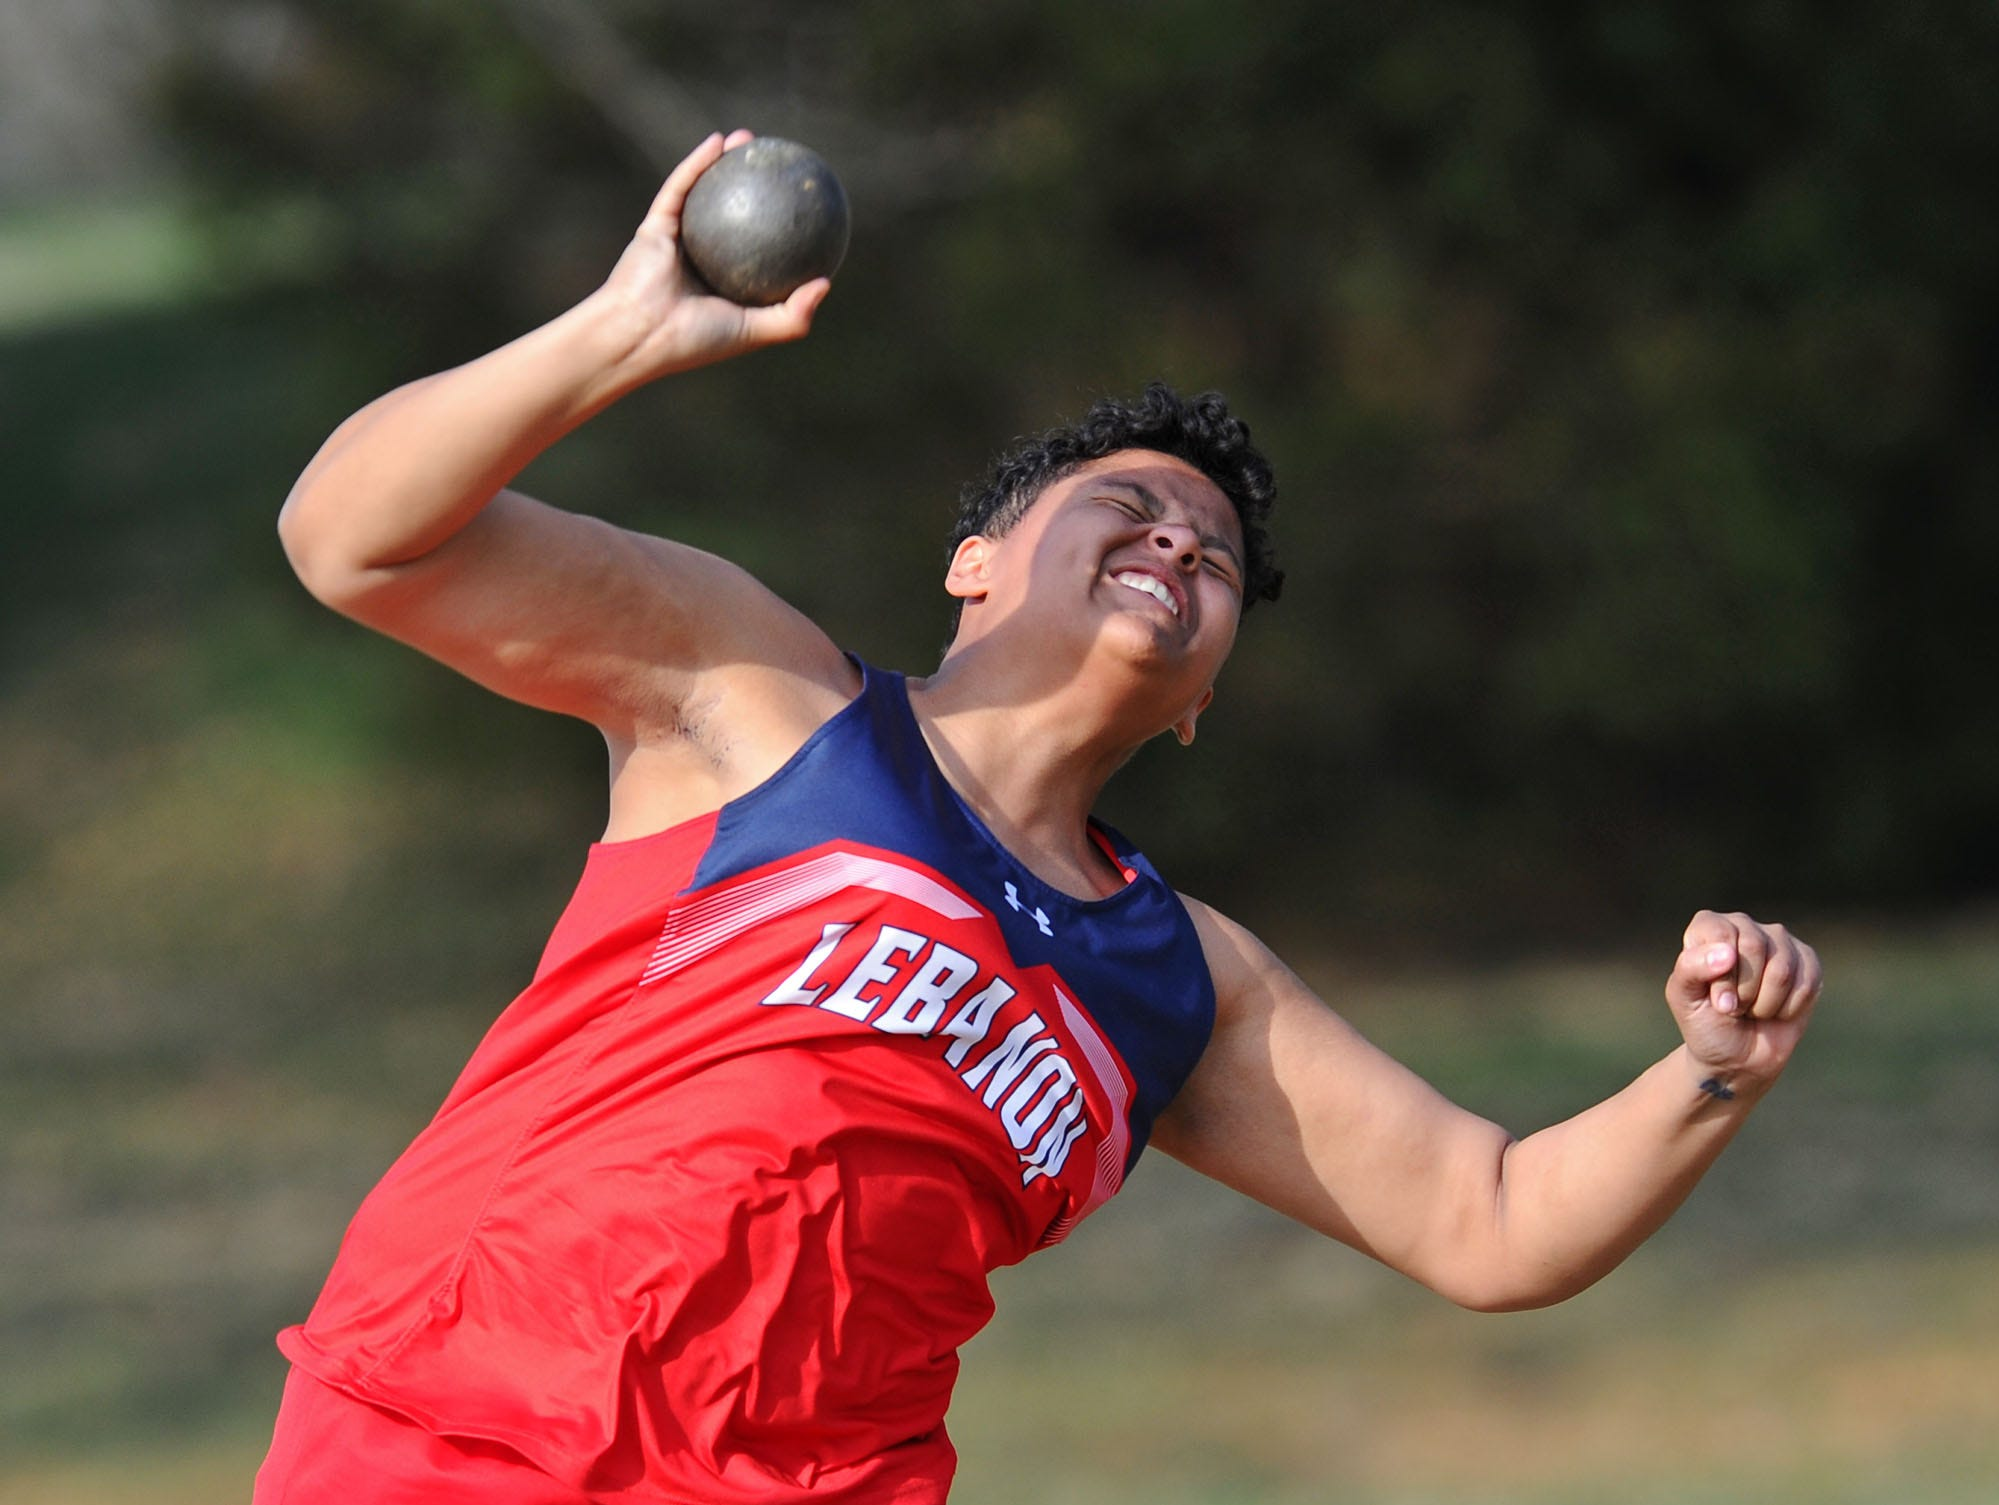 ShanAnn Simmons helped Lebanon end a nine-year dual meet losing streak by winning the shot put in Monday's victory over Garden Spot.